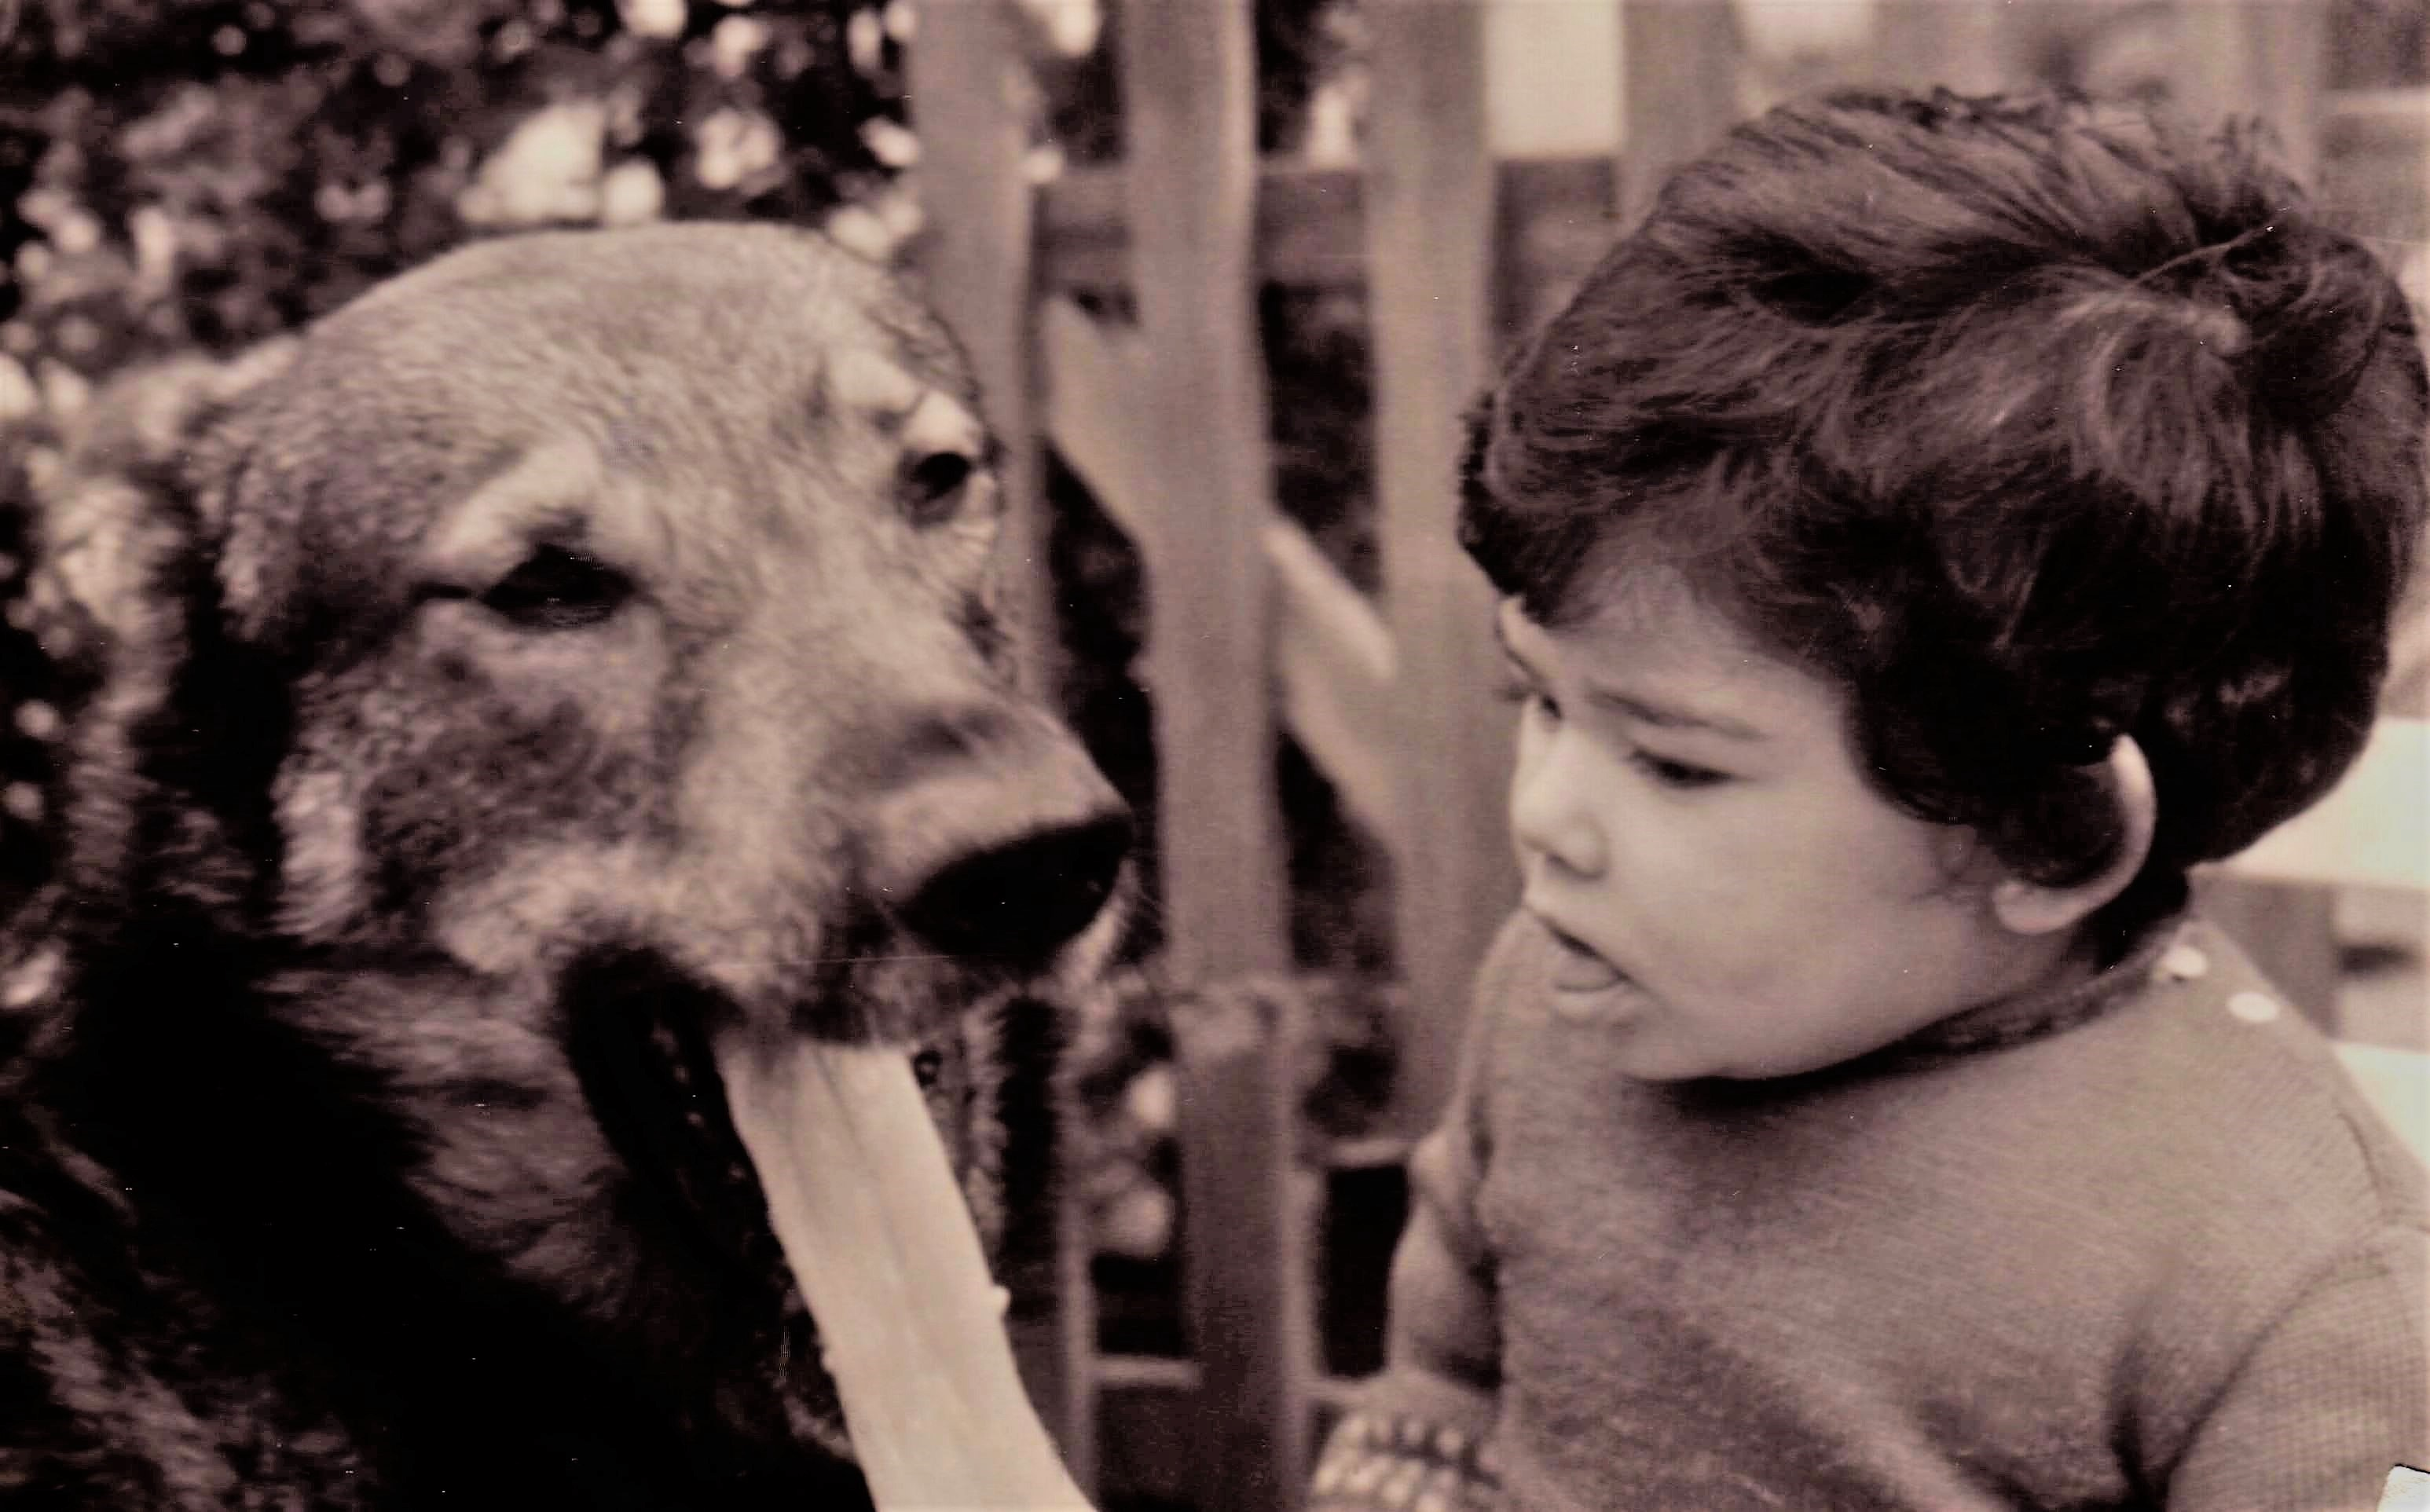 Author Vilma Reynoso as a child in Argentina sticking her tongue out with her dog, Romi.